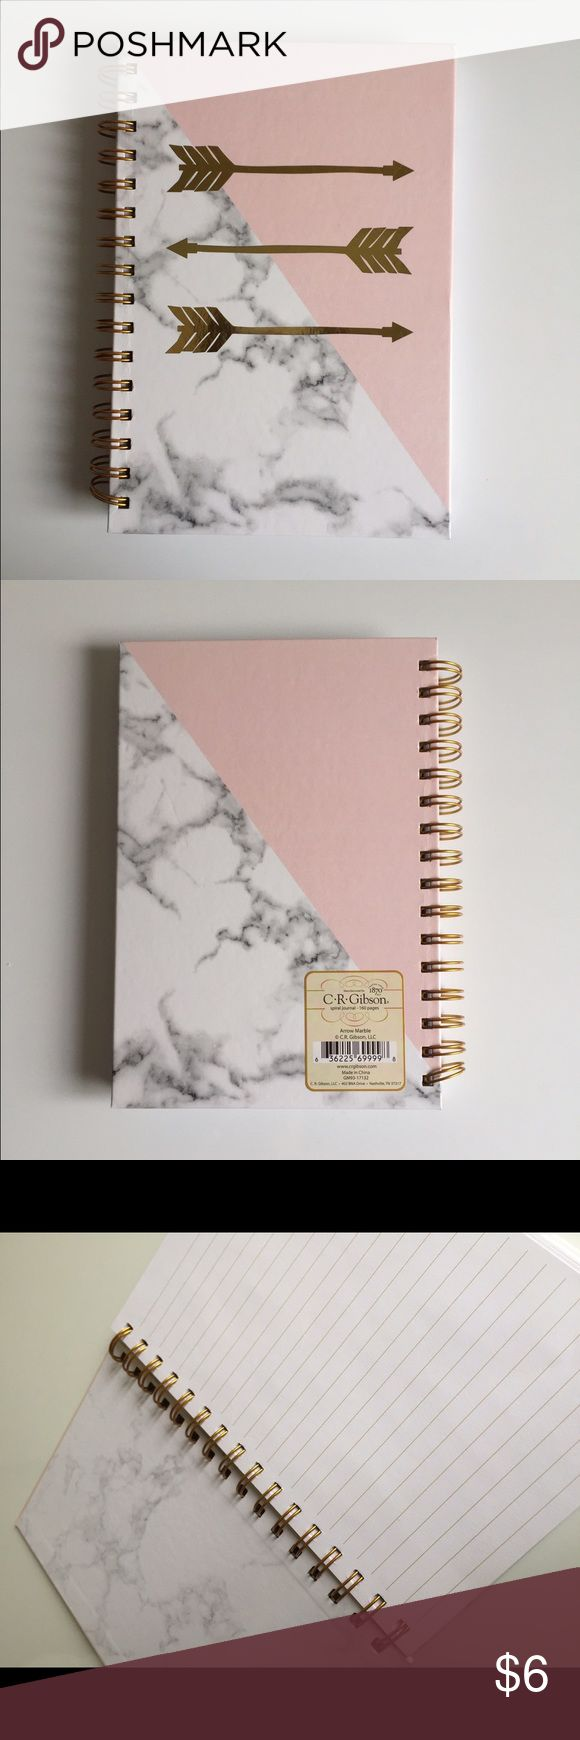 Marbled notebook Brand new cute notebook Accessories